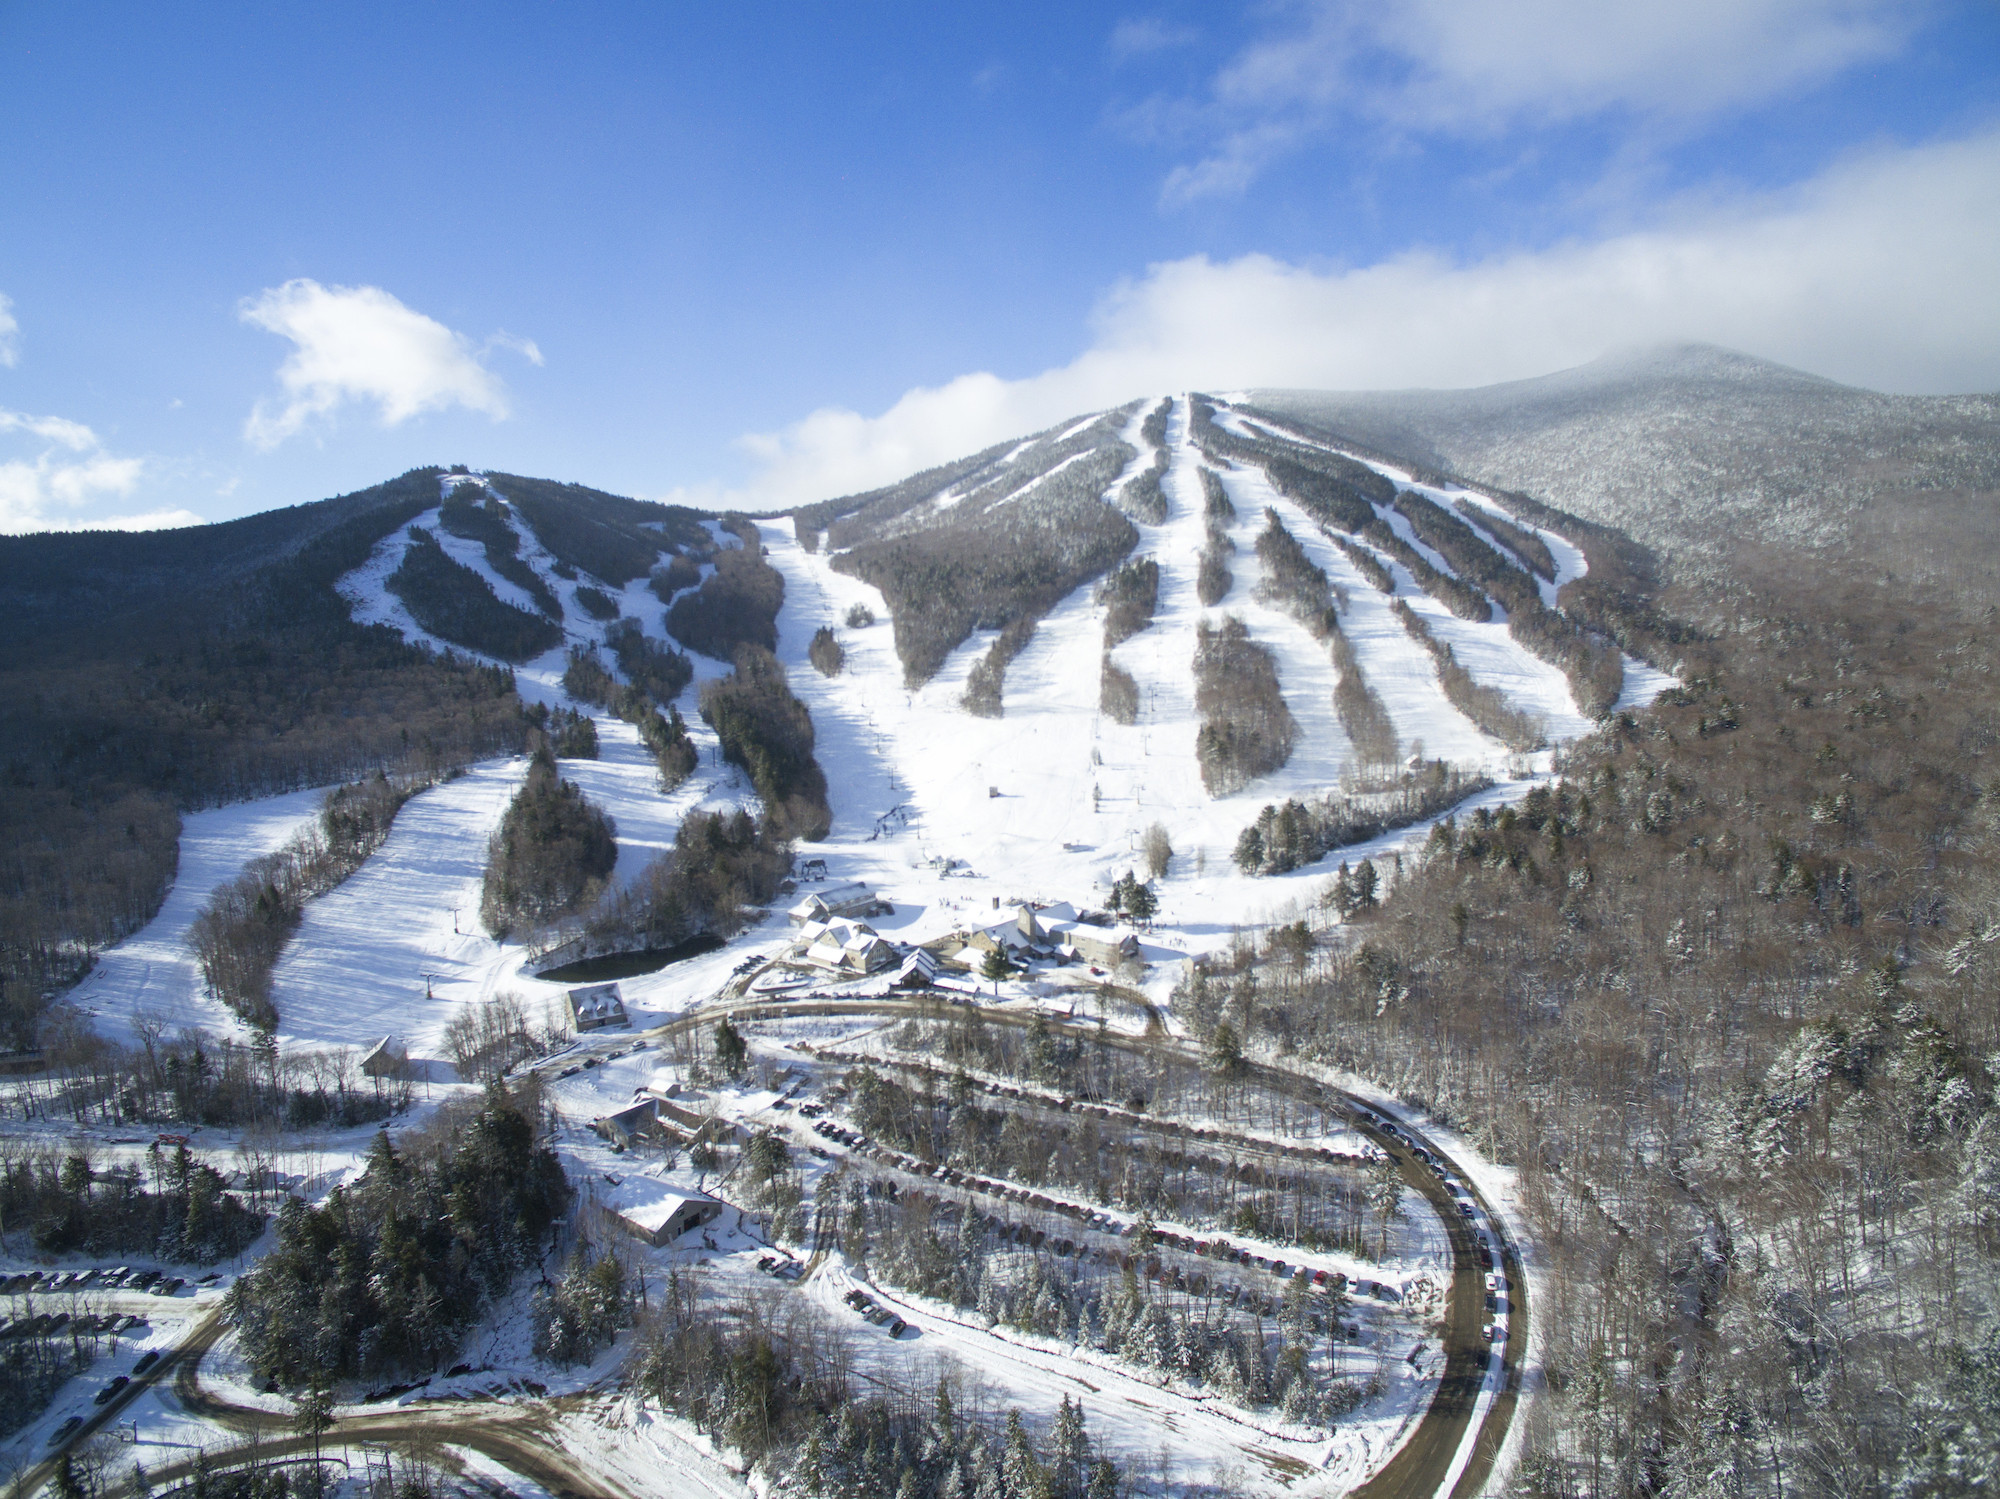 Waterville Valley Resort to host US Alpine Championships in 2019 and 2021